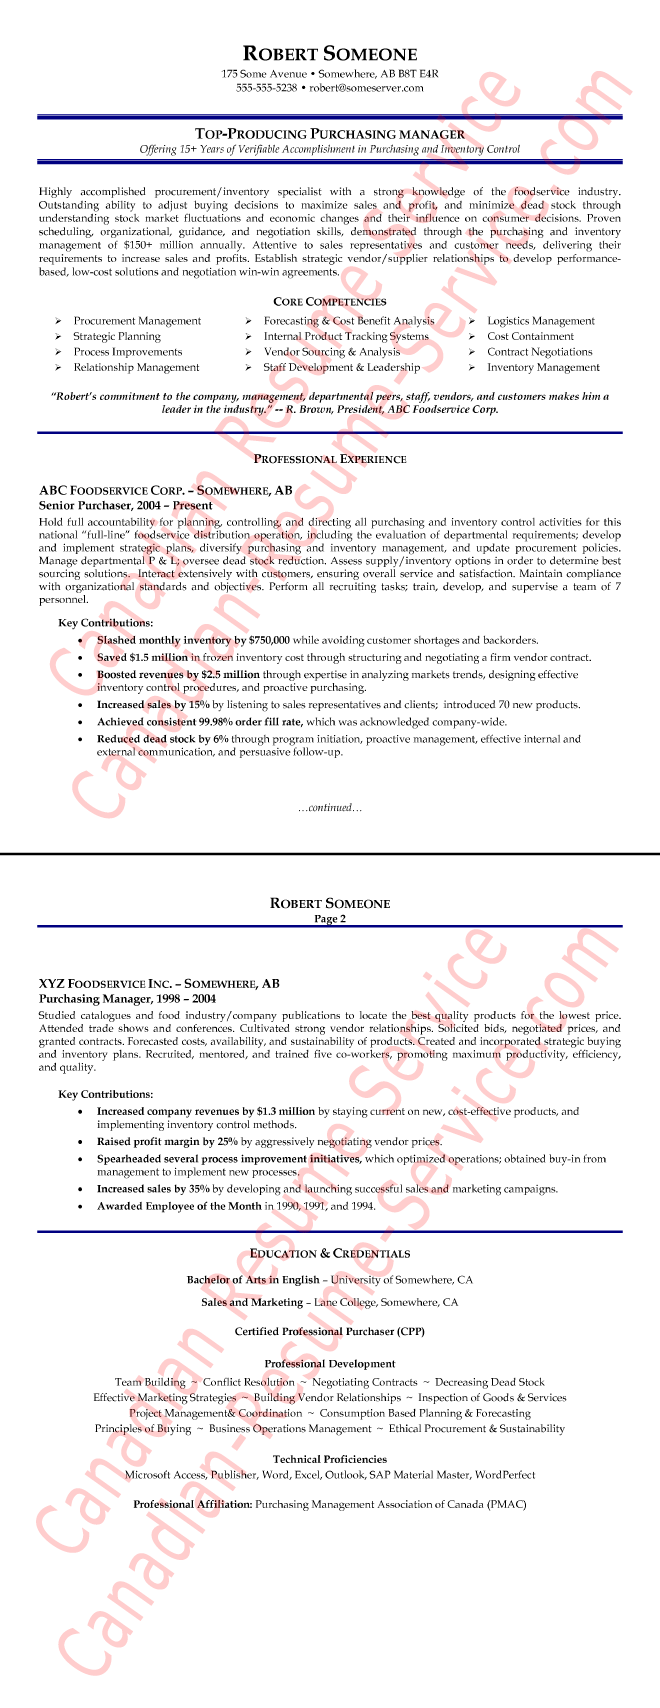 example of a purchasing manager resume save